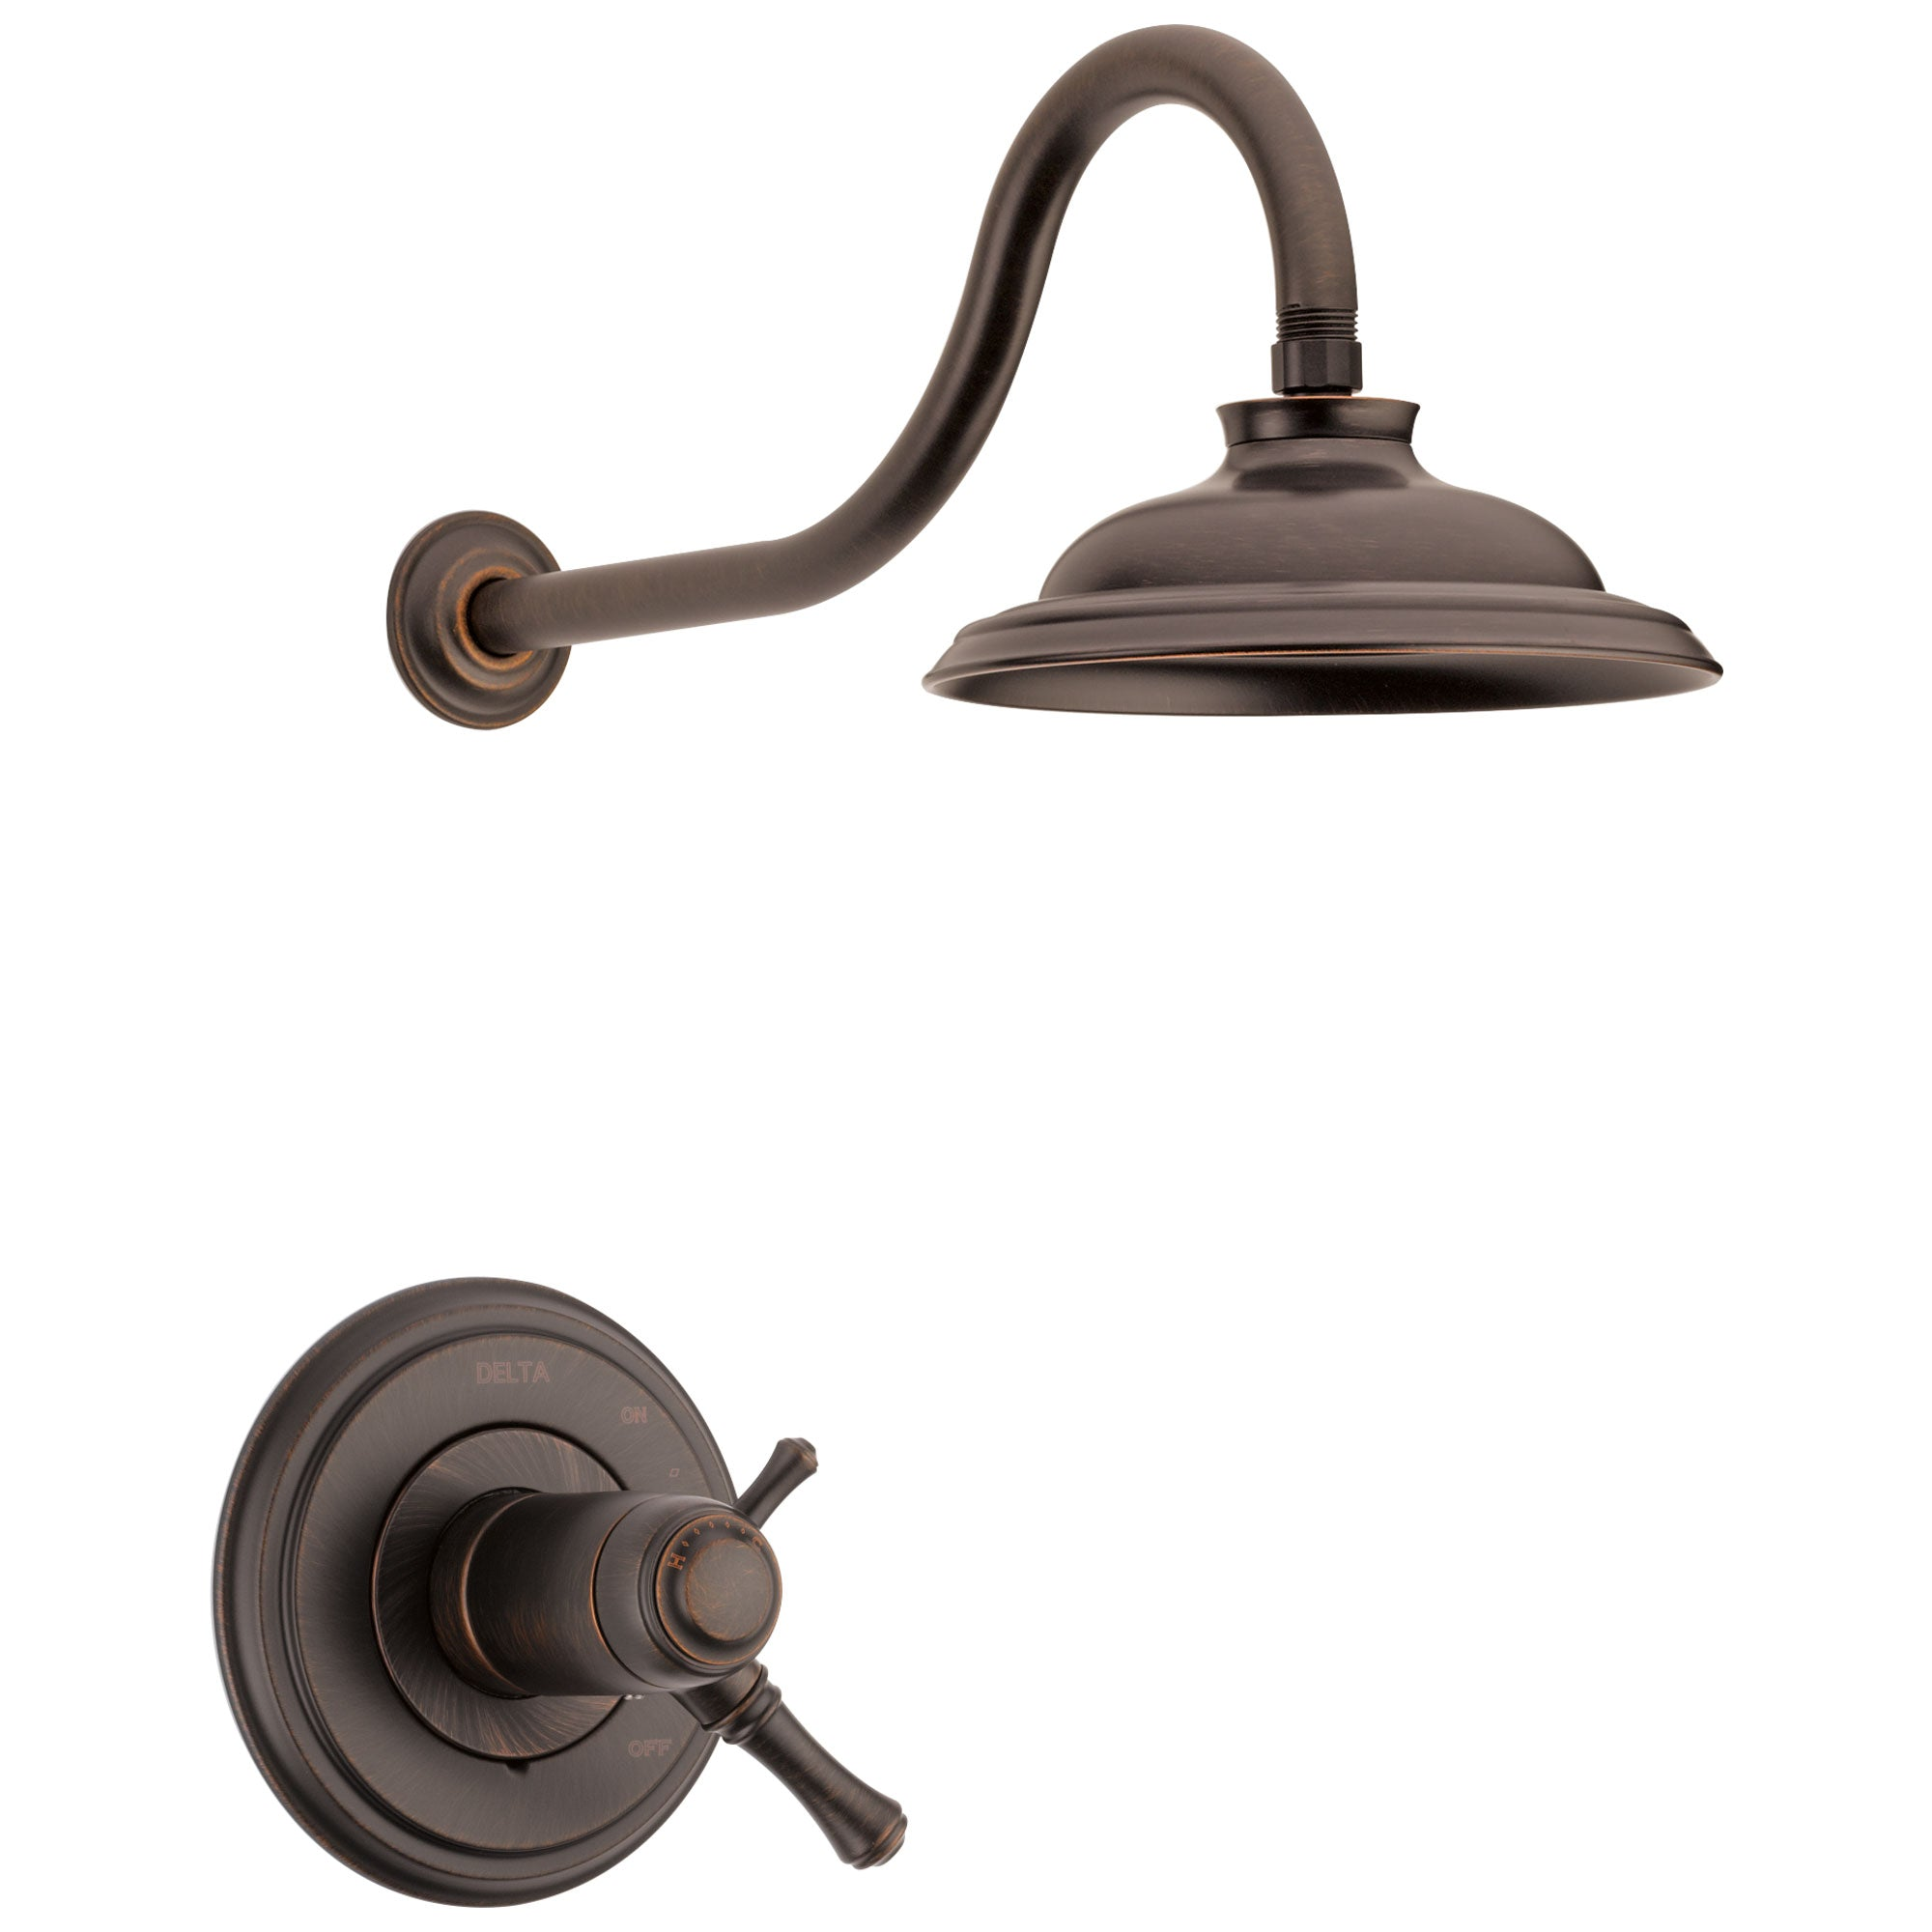 Delta Cassidy Venetian Bronze Finish TempAssure 17T Series Water Efficient Shower only Faucet Trim Kit (Requires Valve) DT17T297RBWE